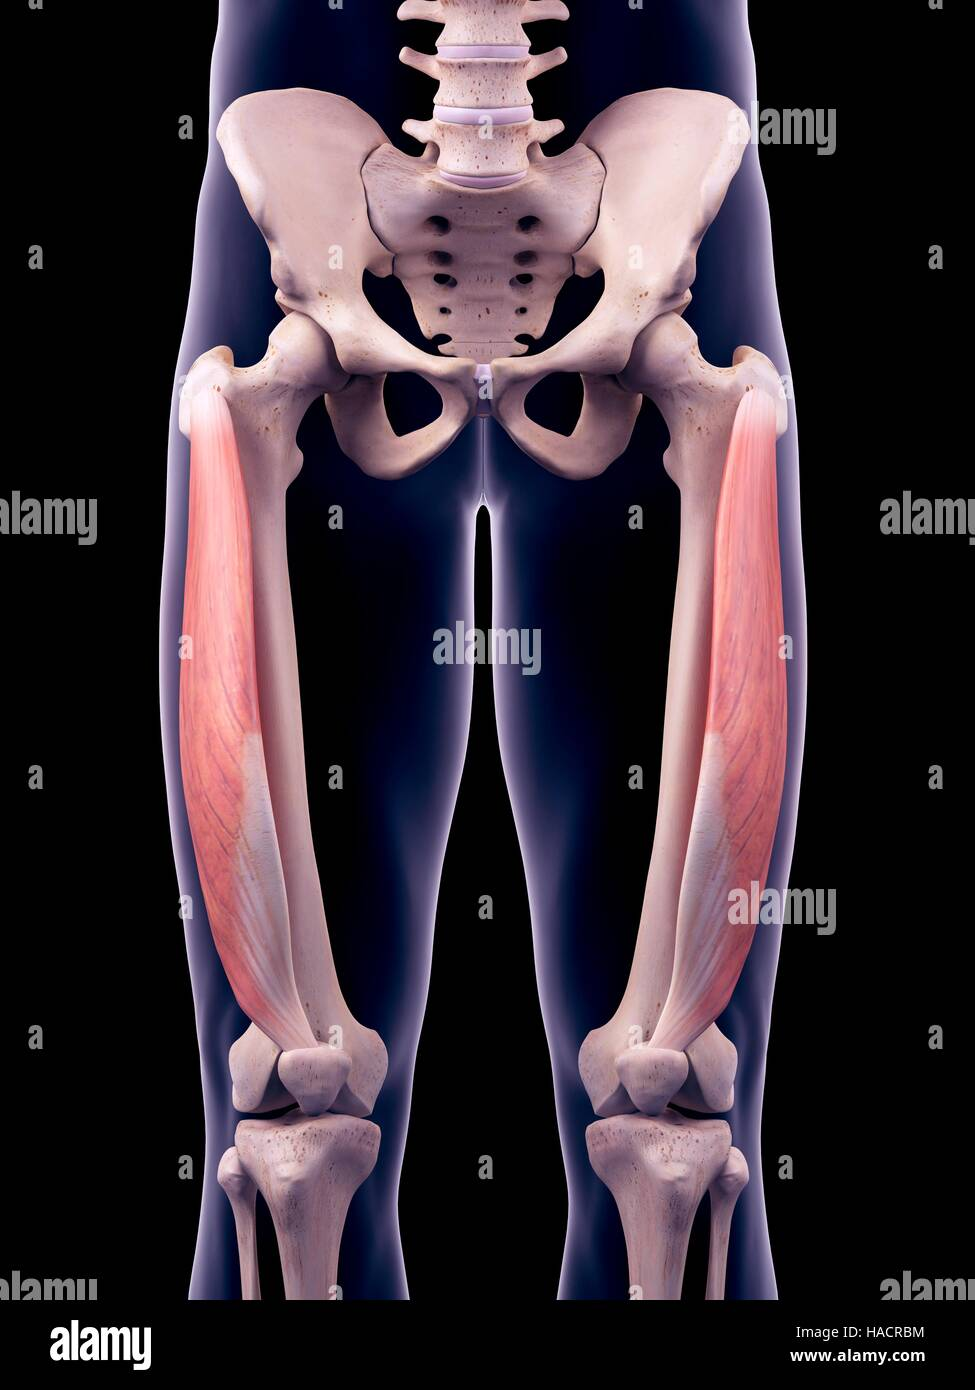 Illustration of the vastus lateralis muscles. - Stock Image